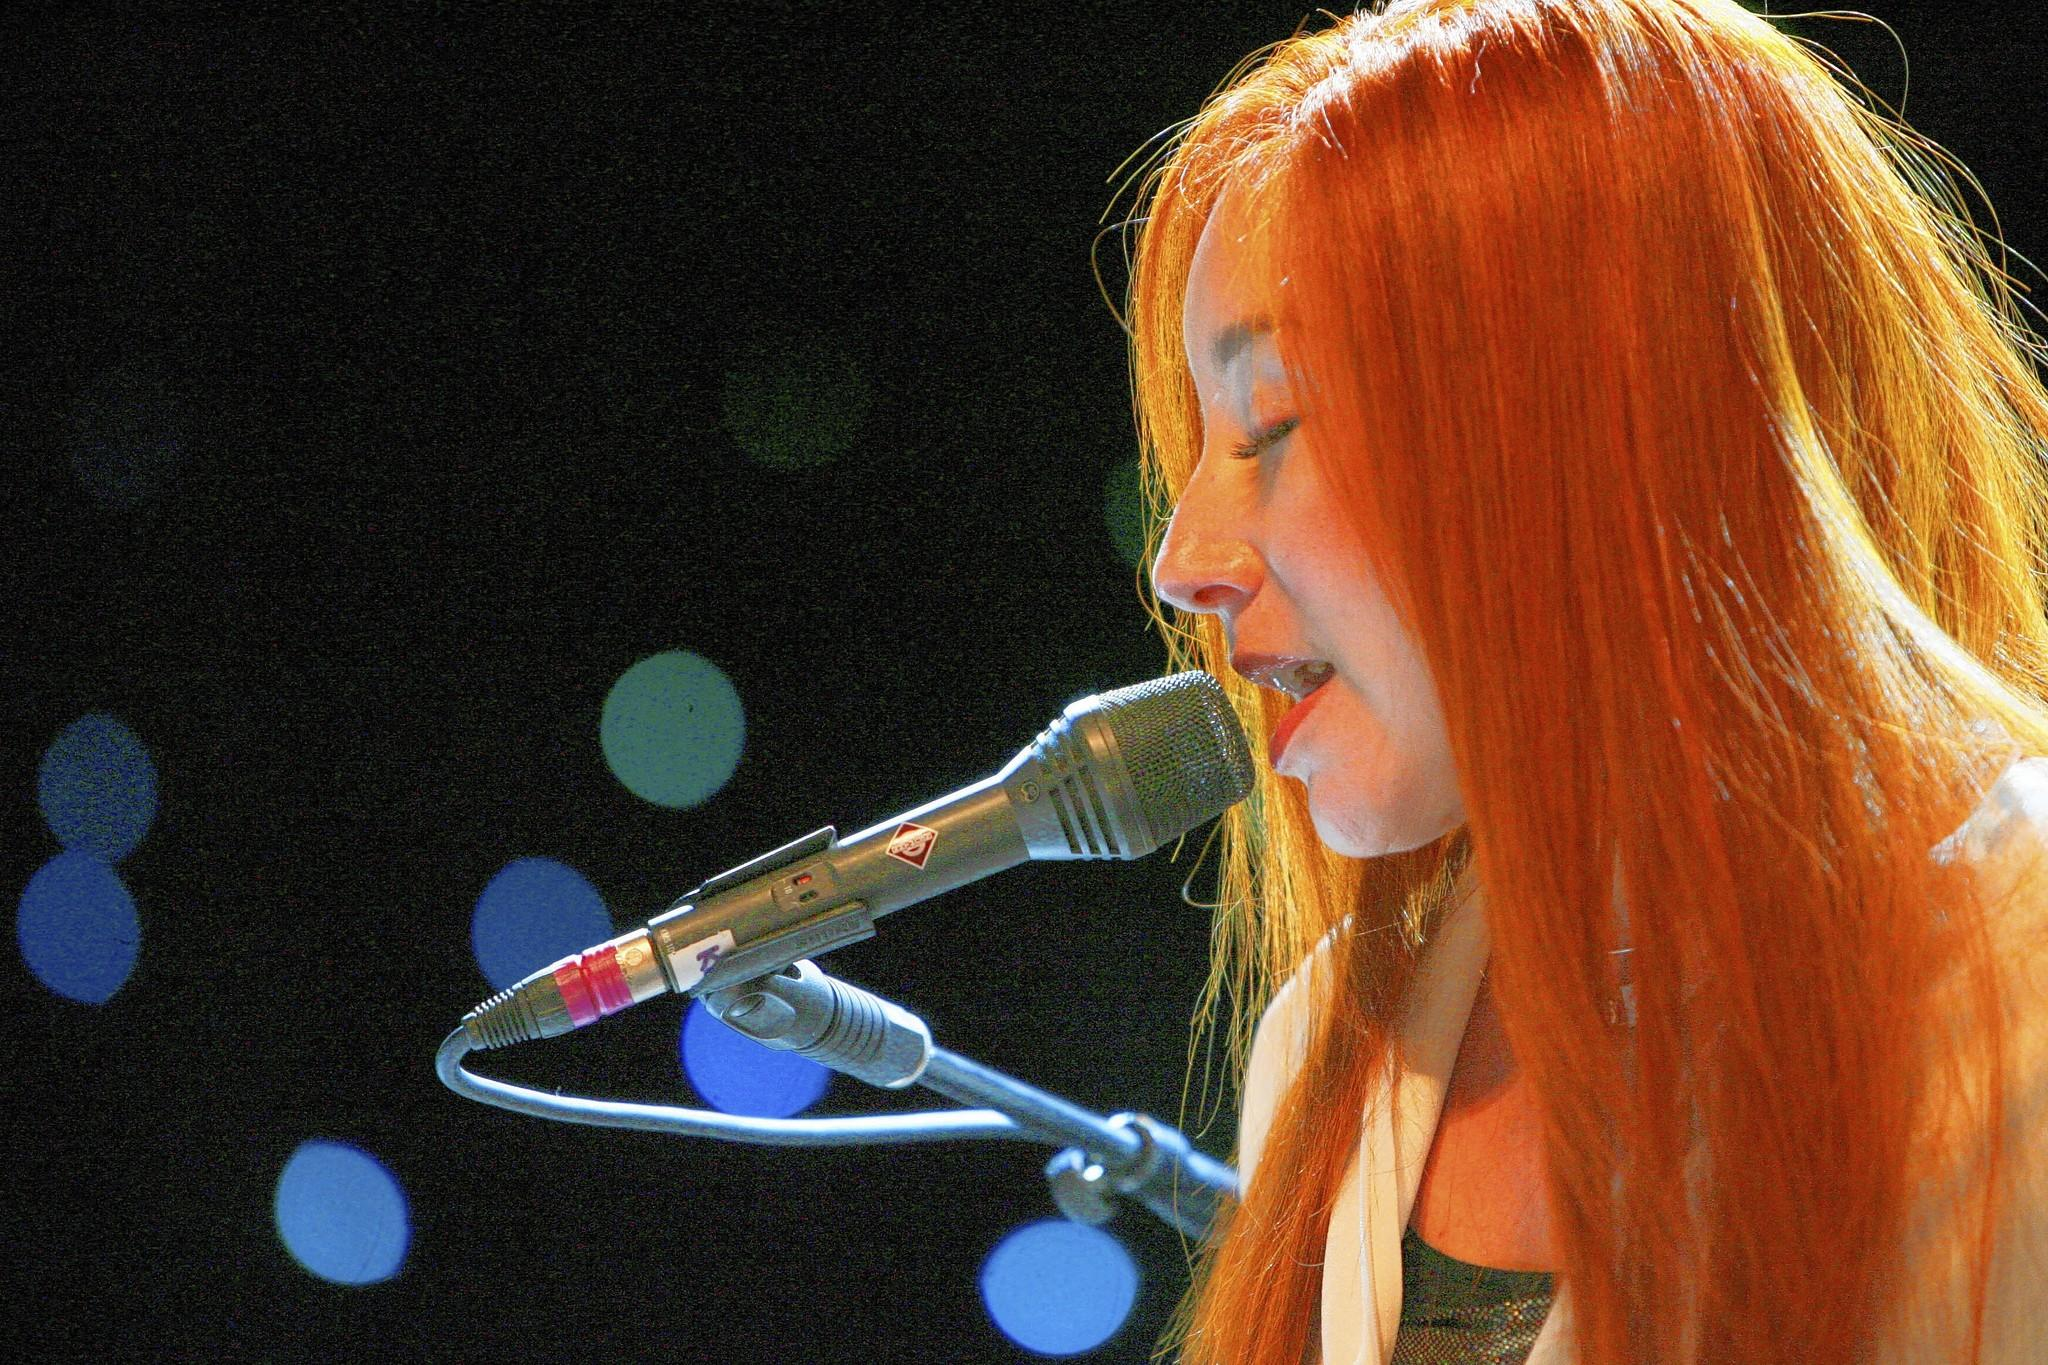 Tori Amos will perform Aug. 23 at Bob Carr Performing Arts Centre in Orlando.